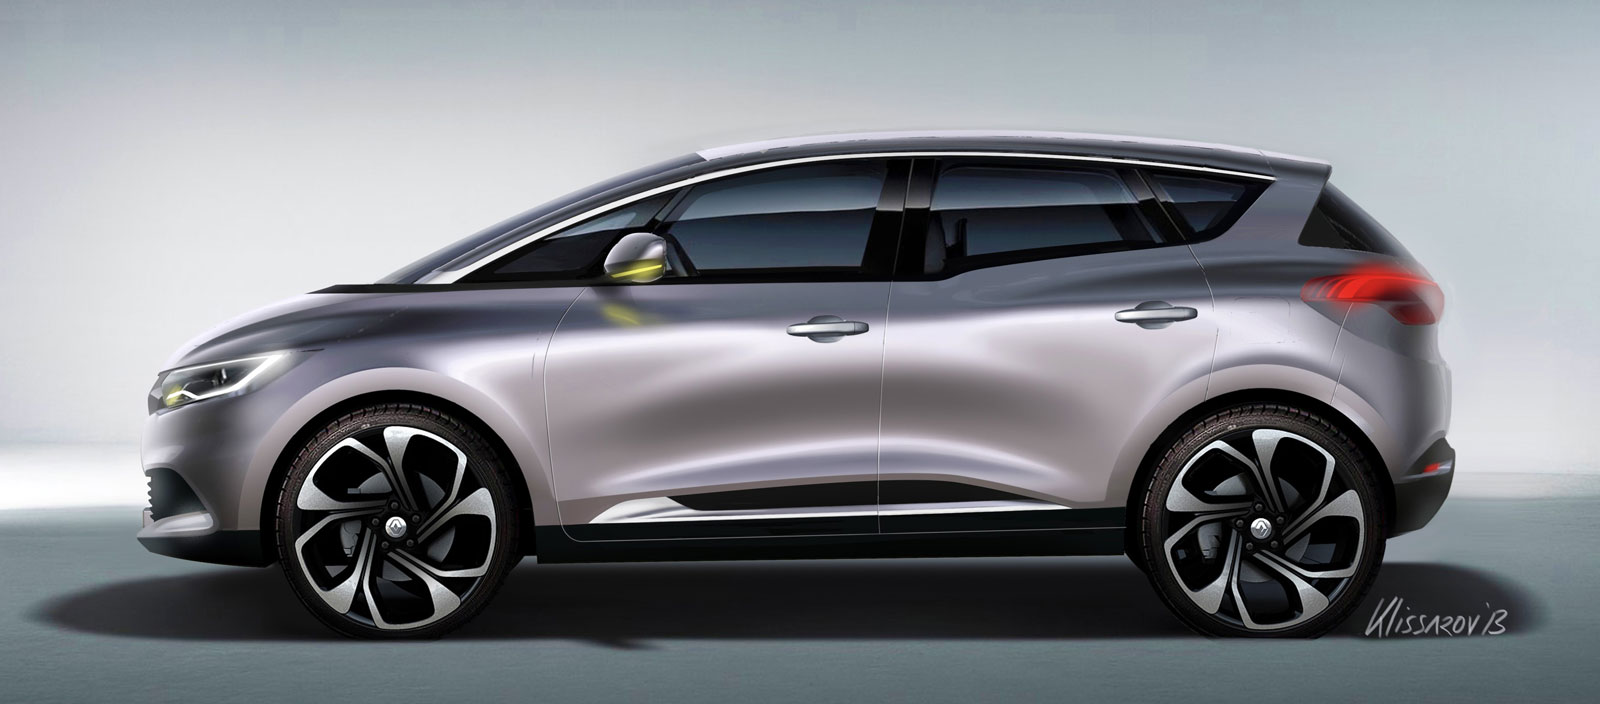 New Renault Scenic Design Sketch Render by Emmanuel ...